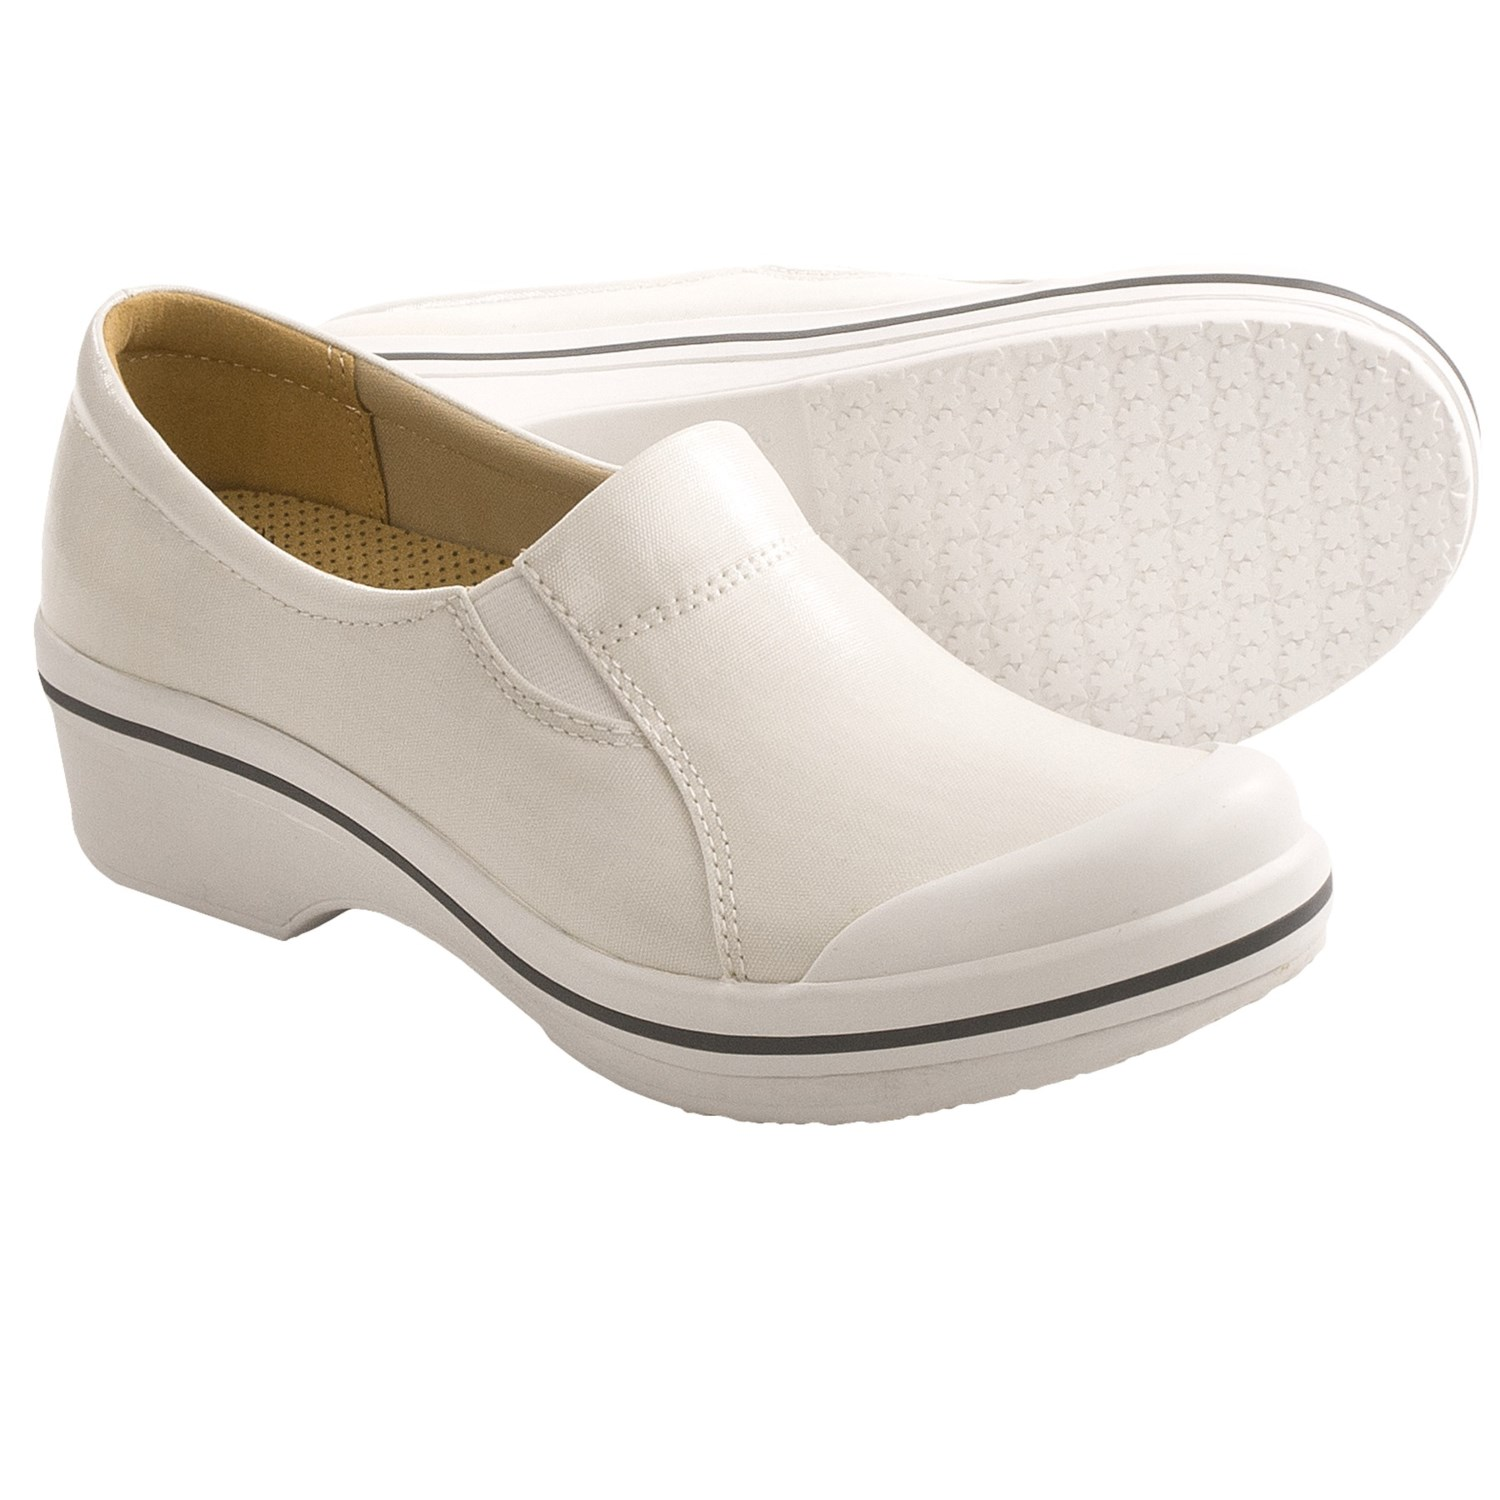 dansko womens shoes clearancePopular Dress | Popular Dress